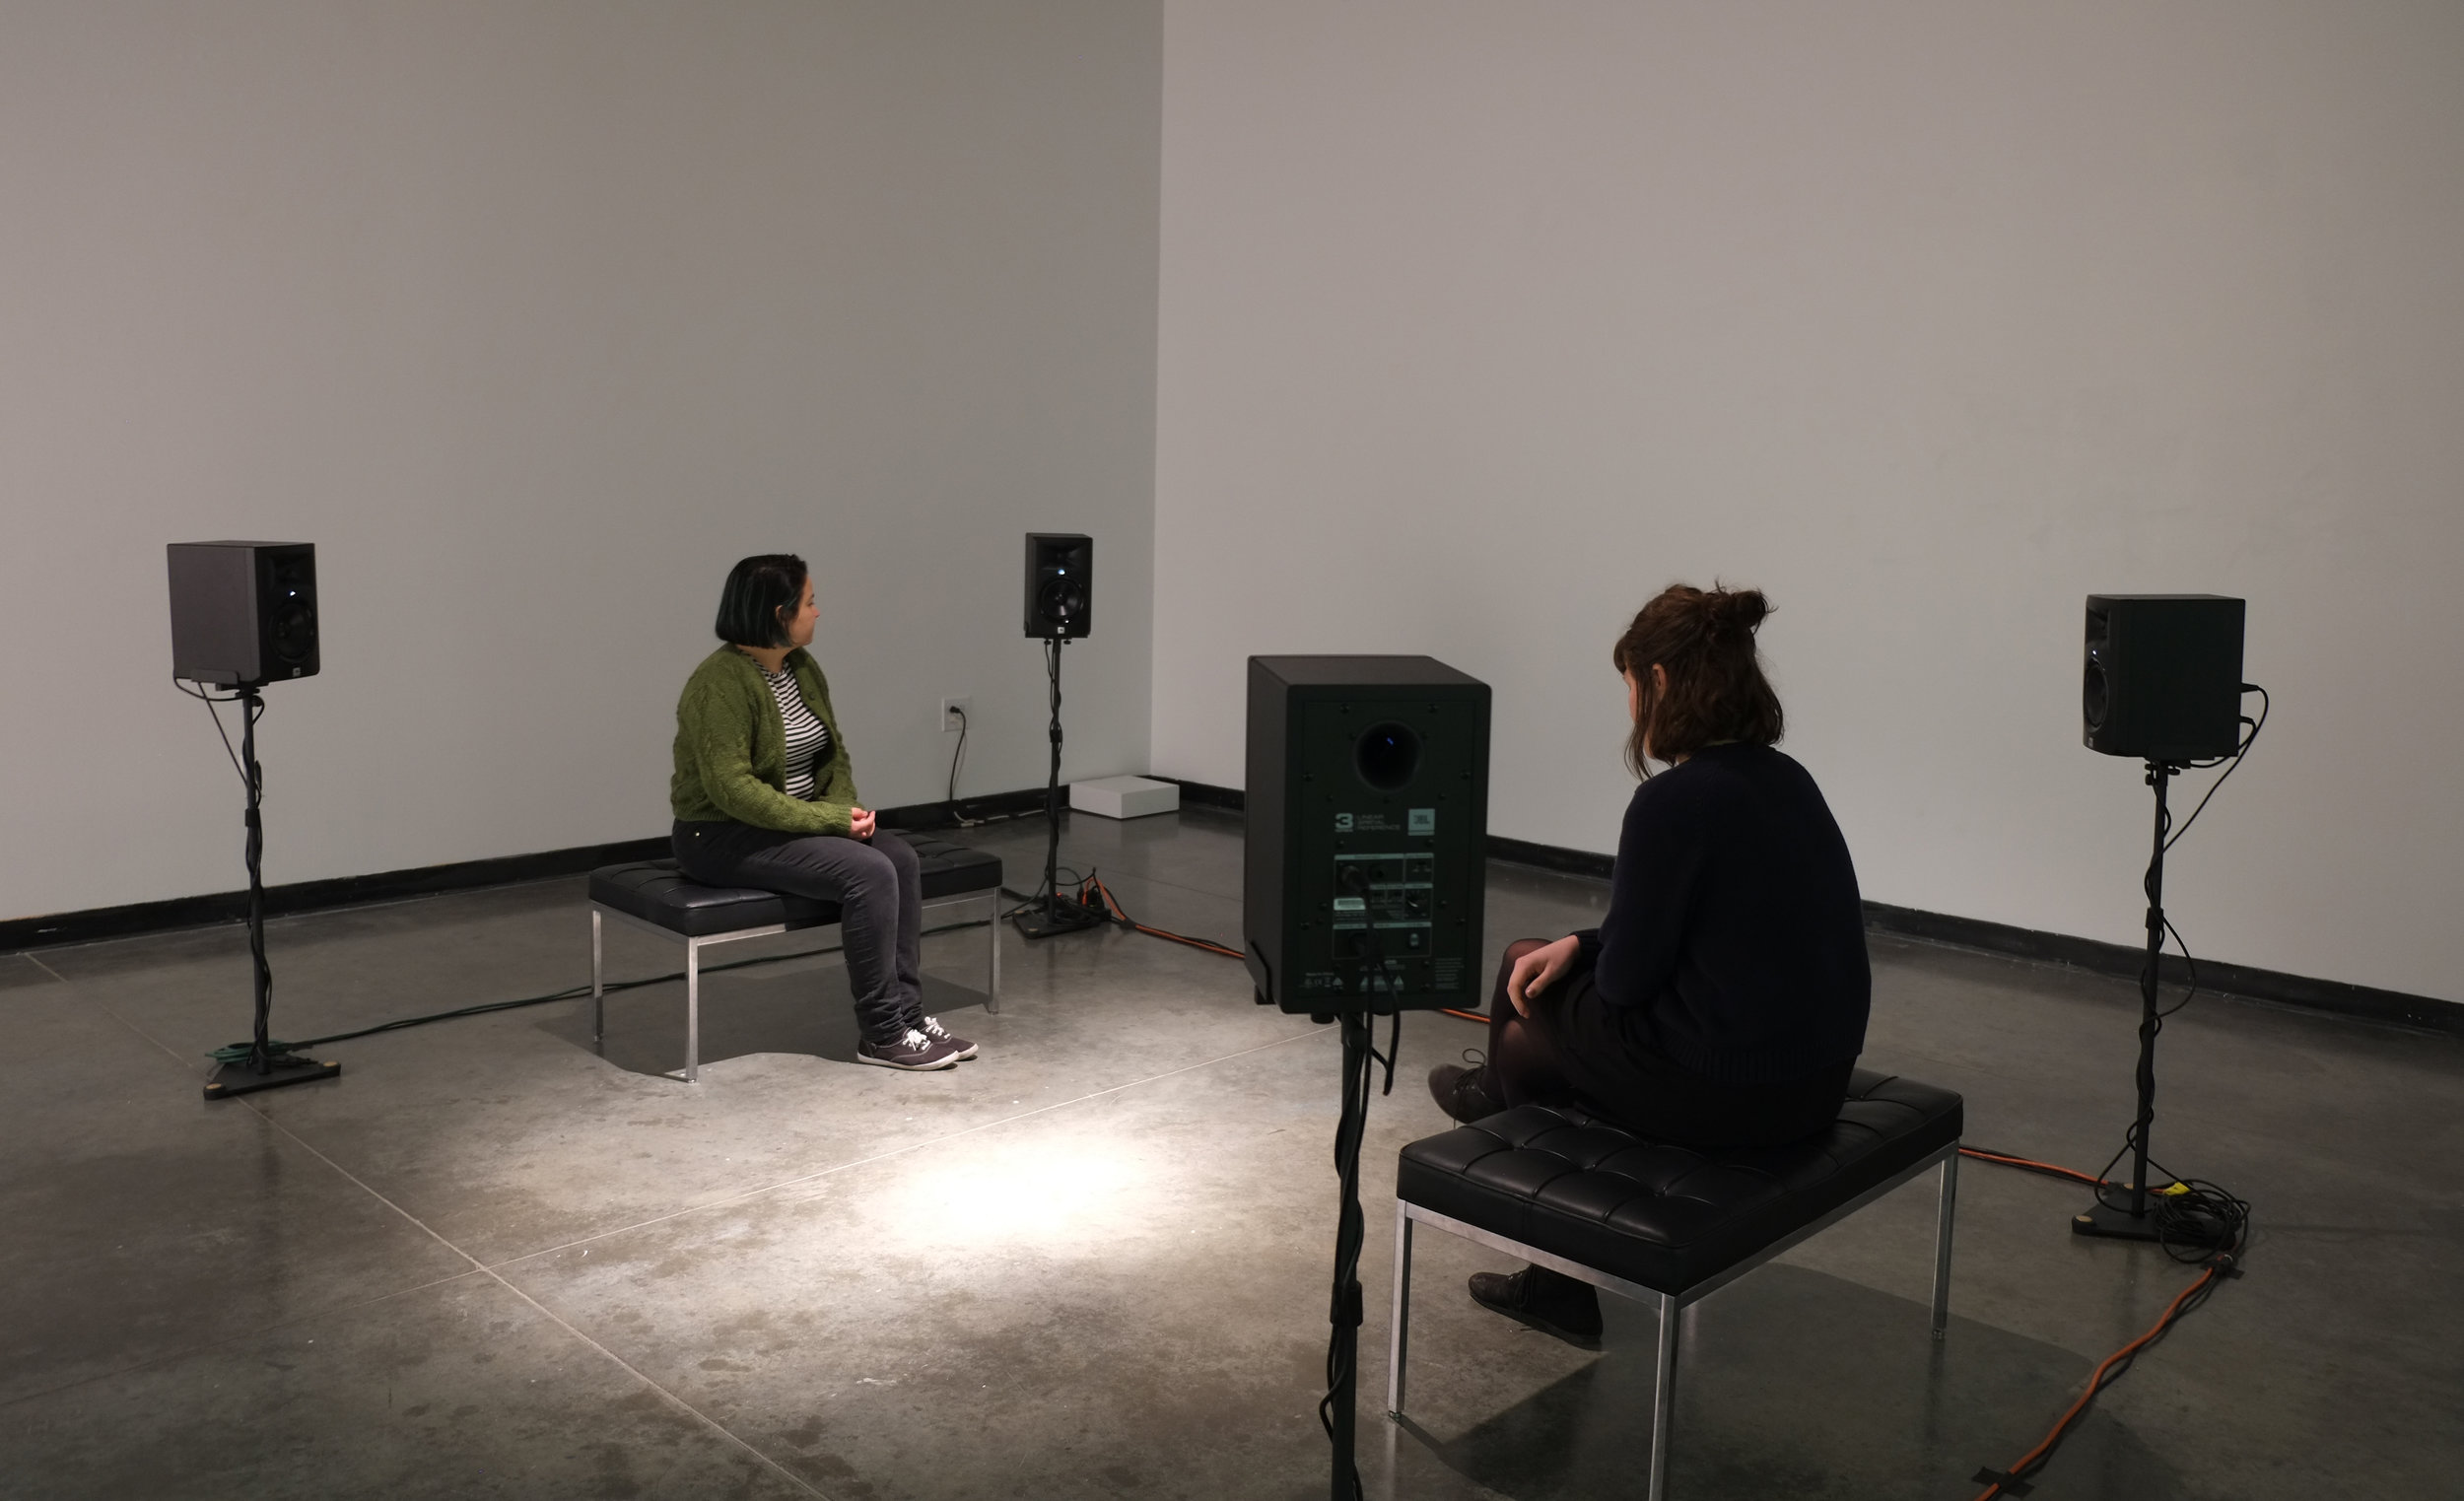 omniscience and oblivion,  2015 installation view at the basile gallery of the herron school of art and design, indianapolis (2017)  listen to a sample on  soundcloud    Omniscience and Oblivion  (2015) explores the function of individual memories to speak to the existence of a collective or shared experience. For the project, I created an audio archive where participants were invited to anonymously share, via an online form, one memory they would like to keep forever and one they would like to let go. From these written contributions I recorded voices of different individuals reading a stranger's memories. In the audio installation, each memory is therefore mediated: by the writer's choice of words and grammar, by the reader, and by the presentation. By listening, the visitor can interpret the connection or disconnection between the voice and the memory being recalled.